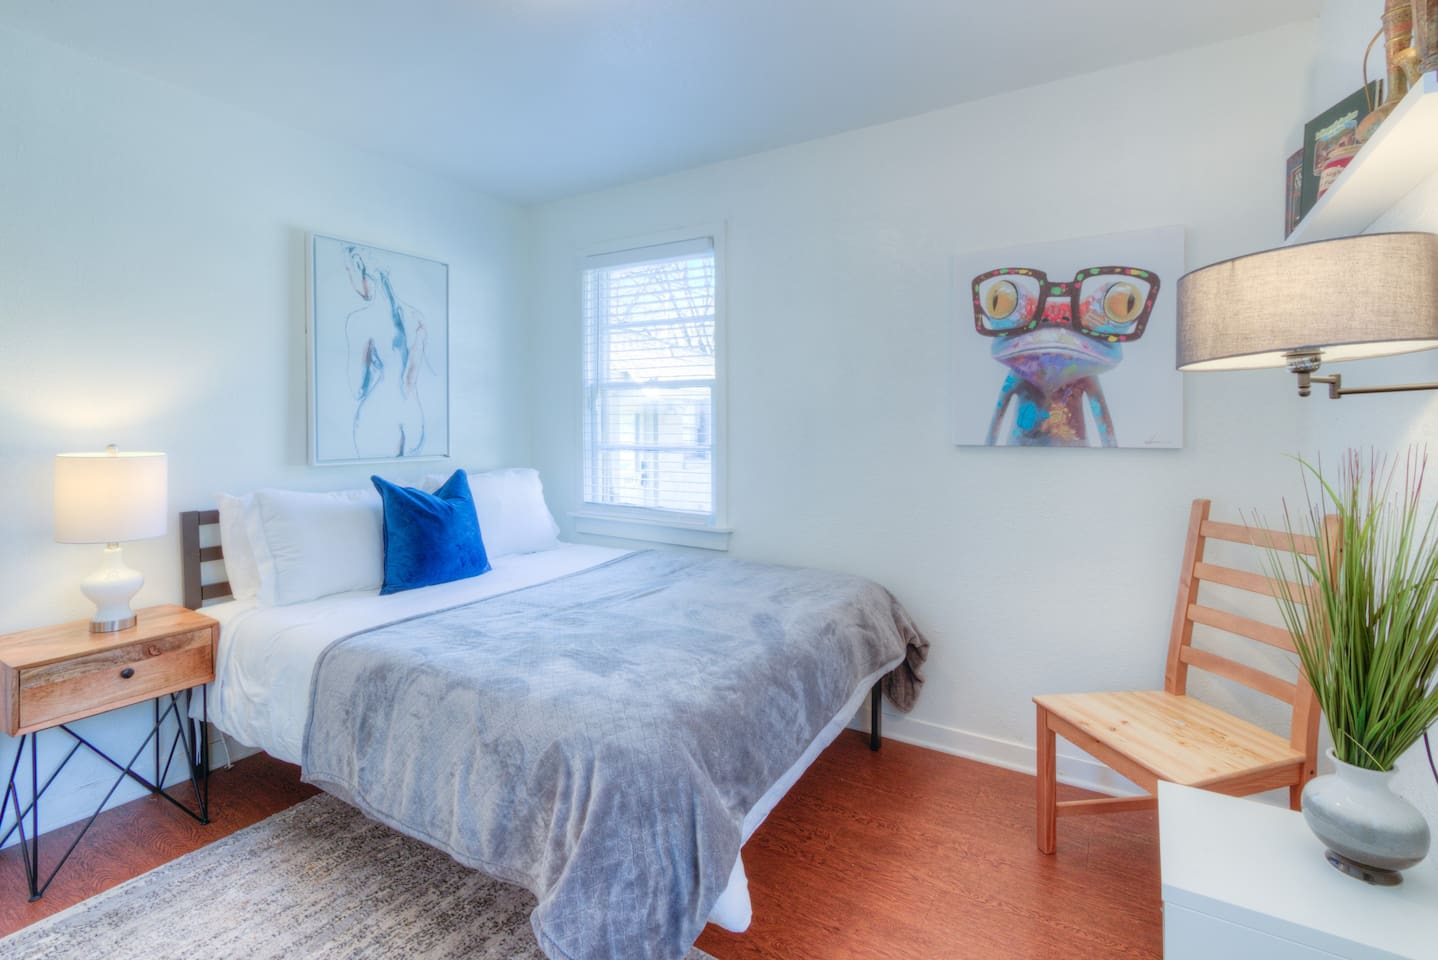 Tranquil comfy and clean bedroom with a brand new queen sized mattress